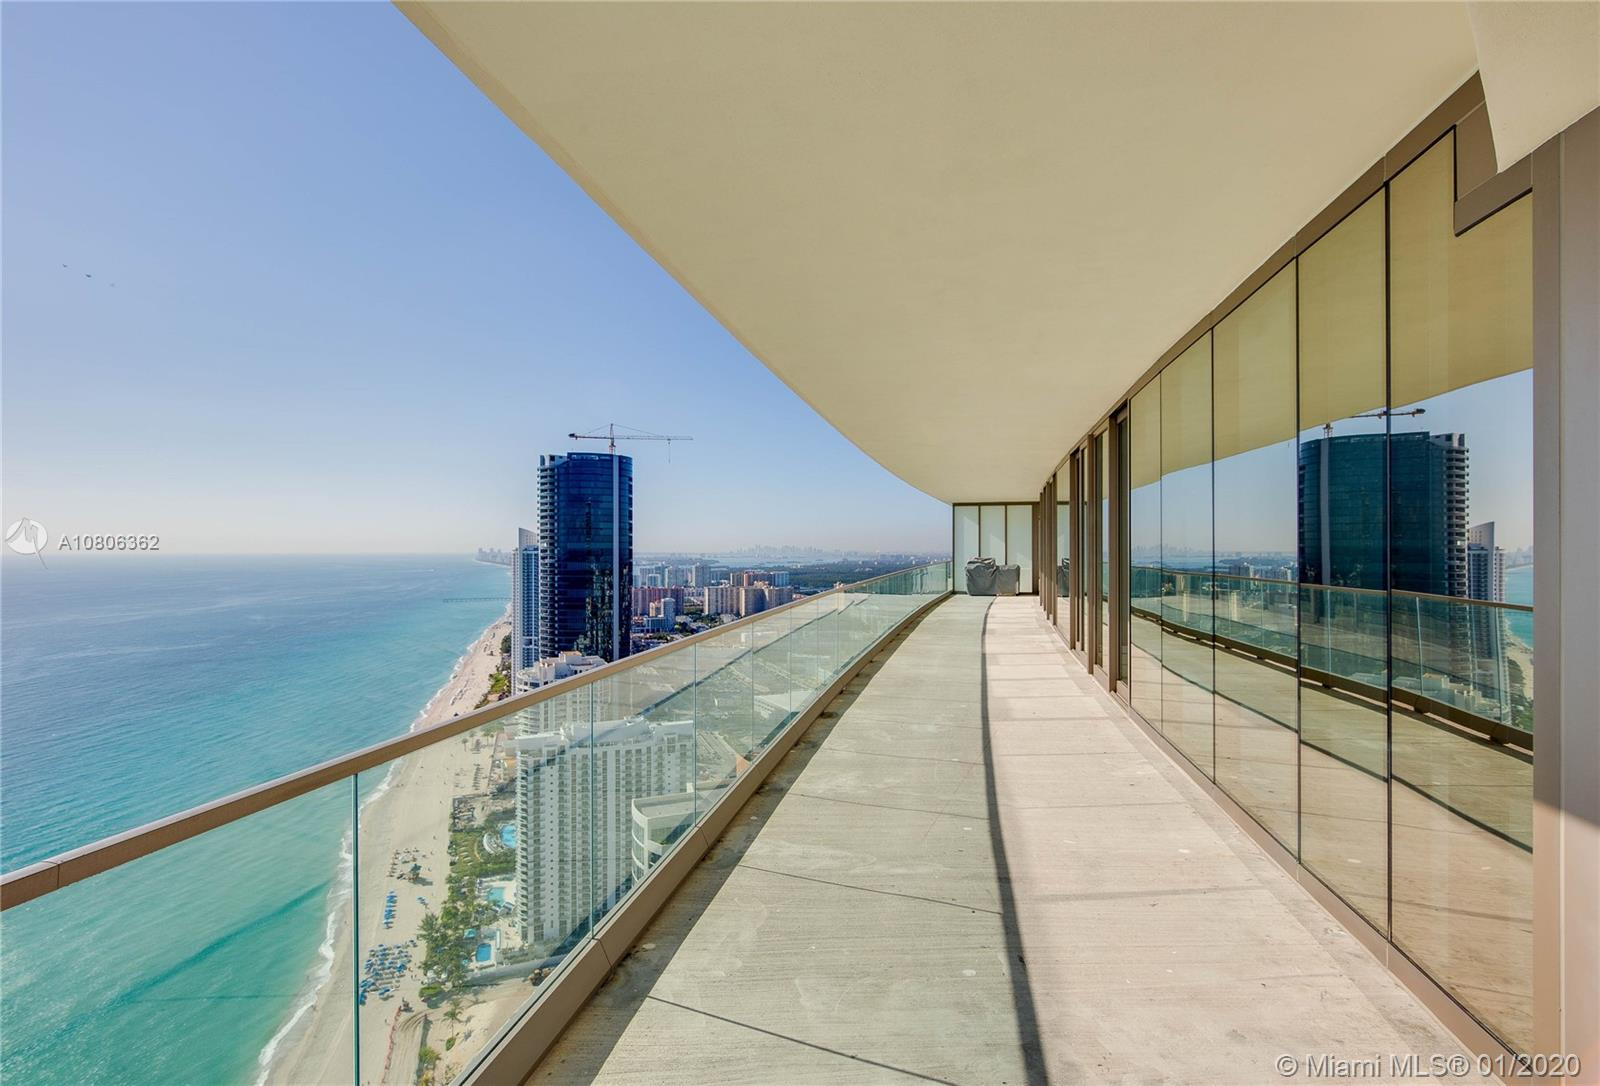 World renowned Giorgio Armani and Architect Cesar Pelli collaborate to design one of the most coveted towers in Sunny Isles Beach. This extraordinary condo features 4 bedrooms + den, 5.5 bathrooms, intelligent climate controls with digital thermostats, motorized drapes, programmed lighting controls, floor to ceiling windows, and 2 large open glass-edge balconies with summer kitchen. The top of the line kitchen has Wolf appliances, natural stone countertops, Sub-Zero refrigerator and wine cooler. Enjoy Armani Casa world class amenities including: 24/7 Concierge Services, Spa, Fitness Center, Swimming Pool with Sundeck, Children's Playground Theatre, Beachside Service, Cigar and Wine Rooms, Oceanfront Restaurant & Bar. 4050 sqft. As per Owner